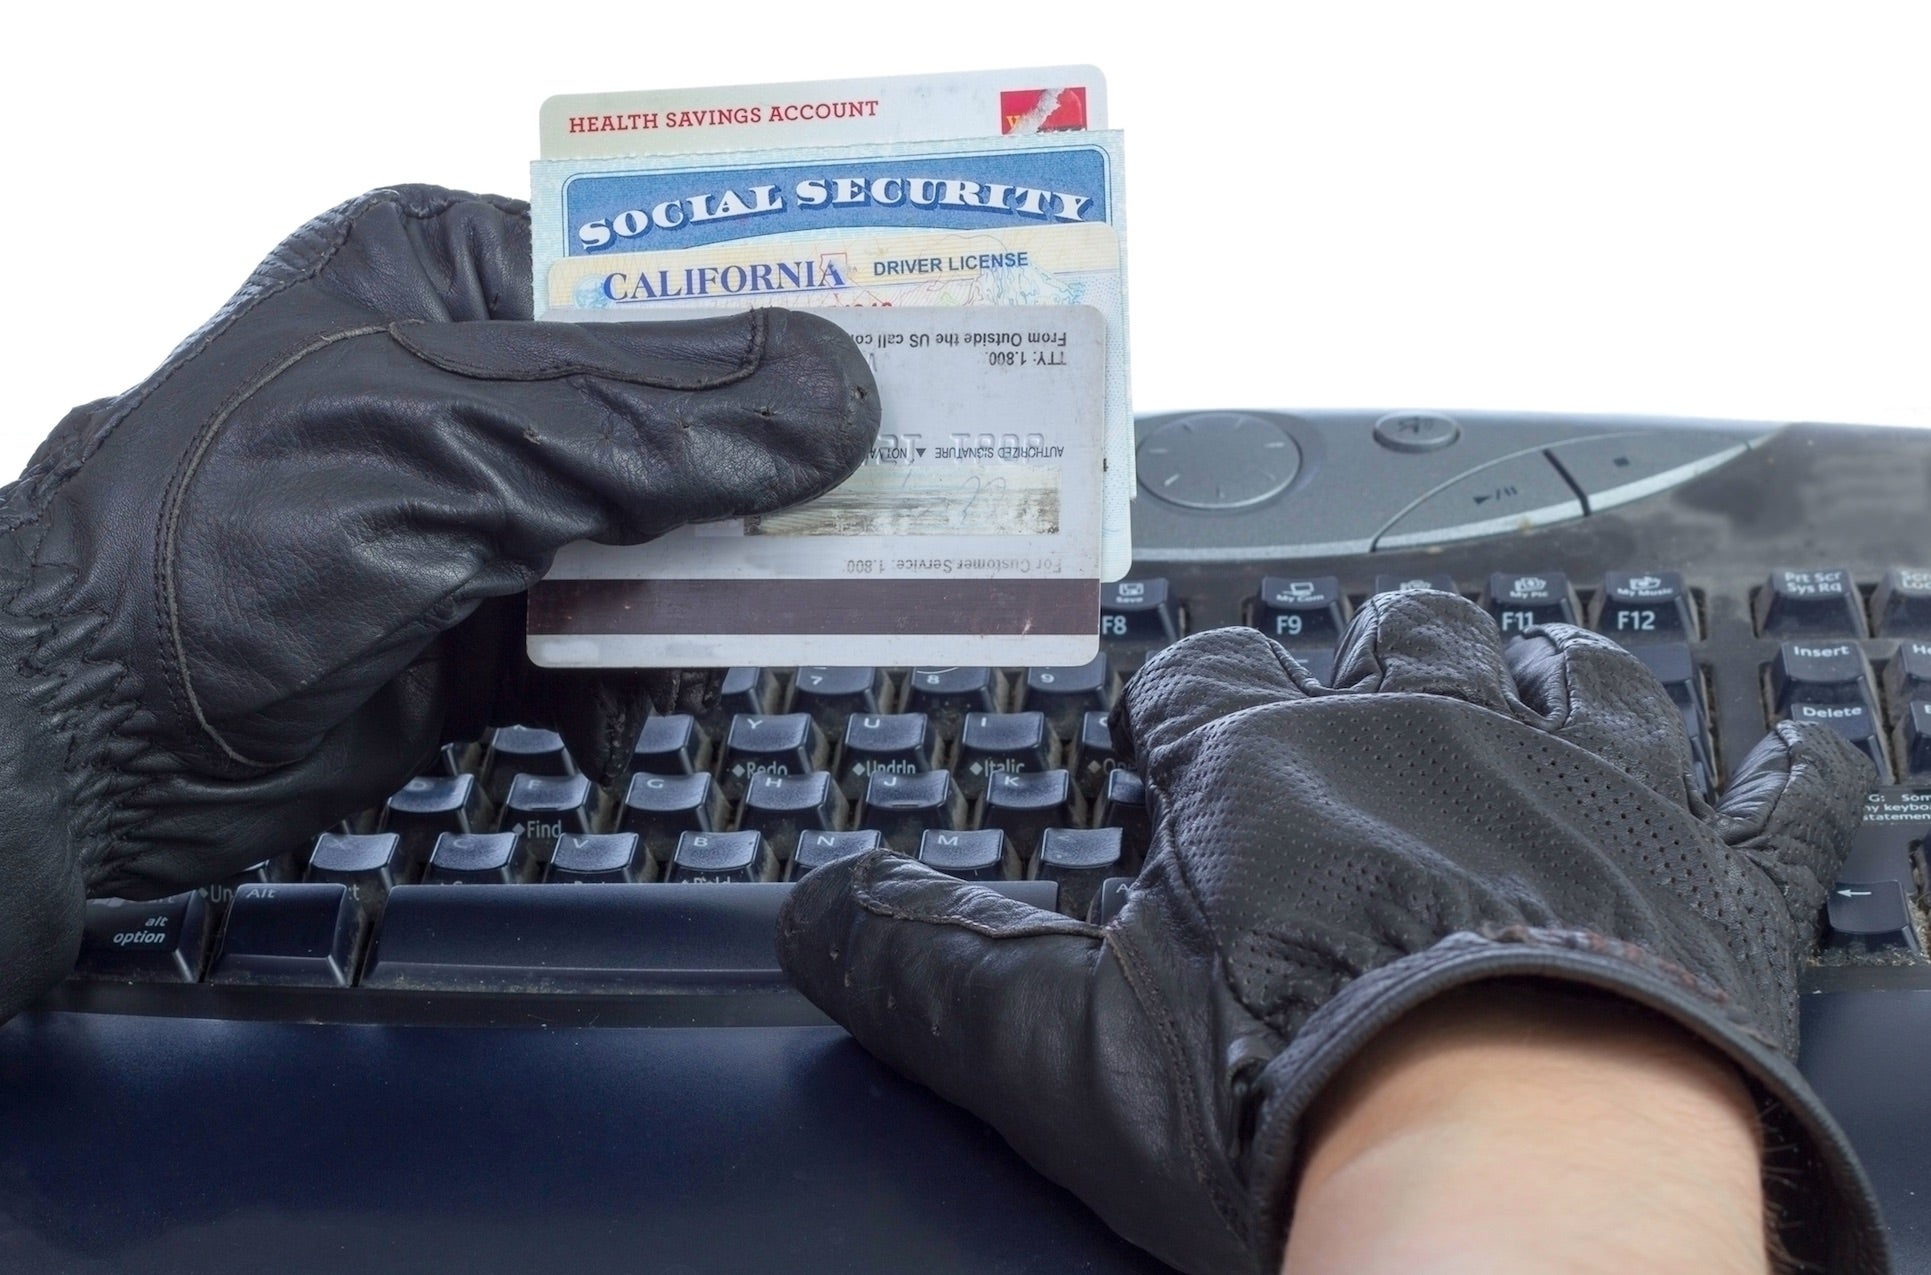 identity theft and social security number